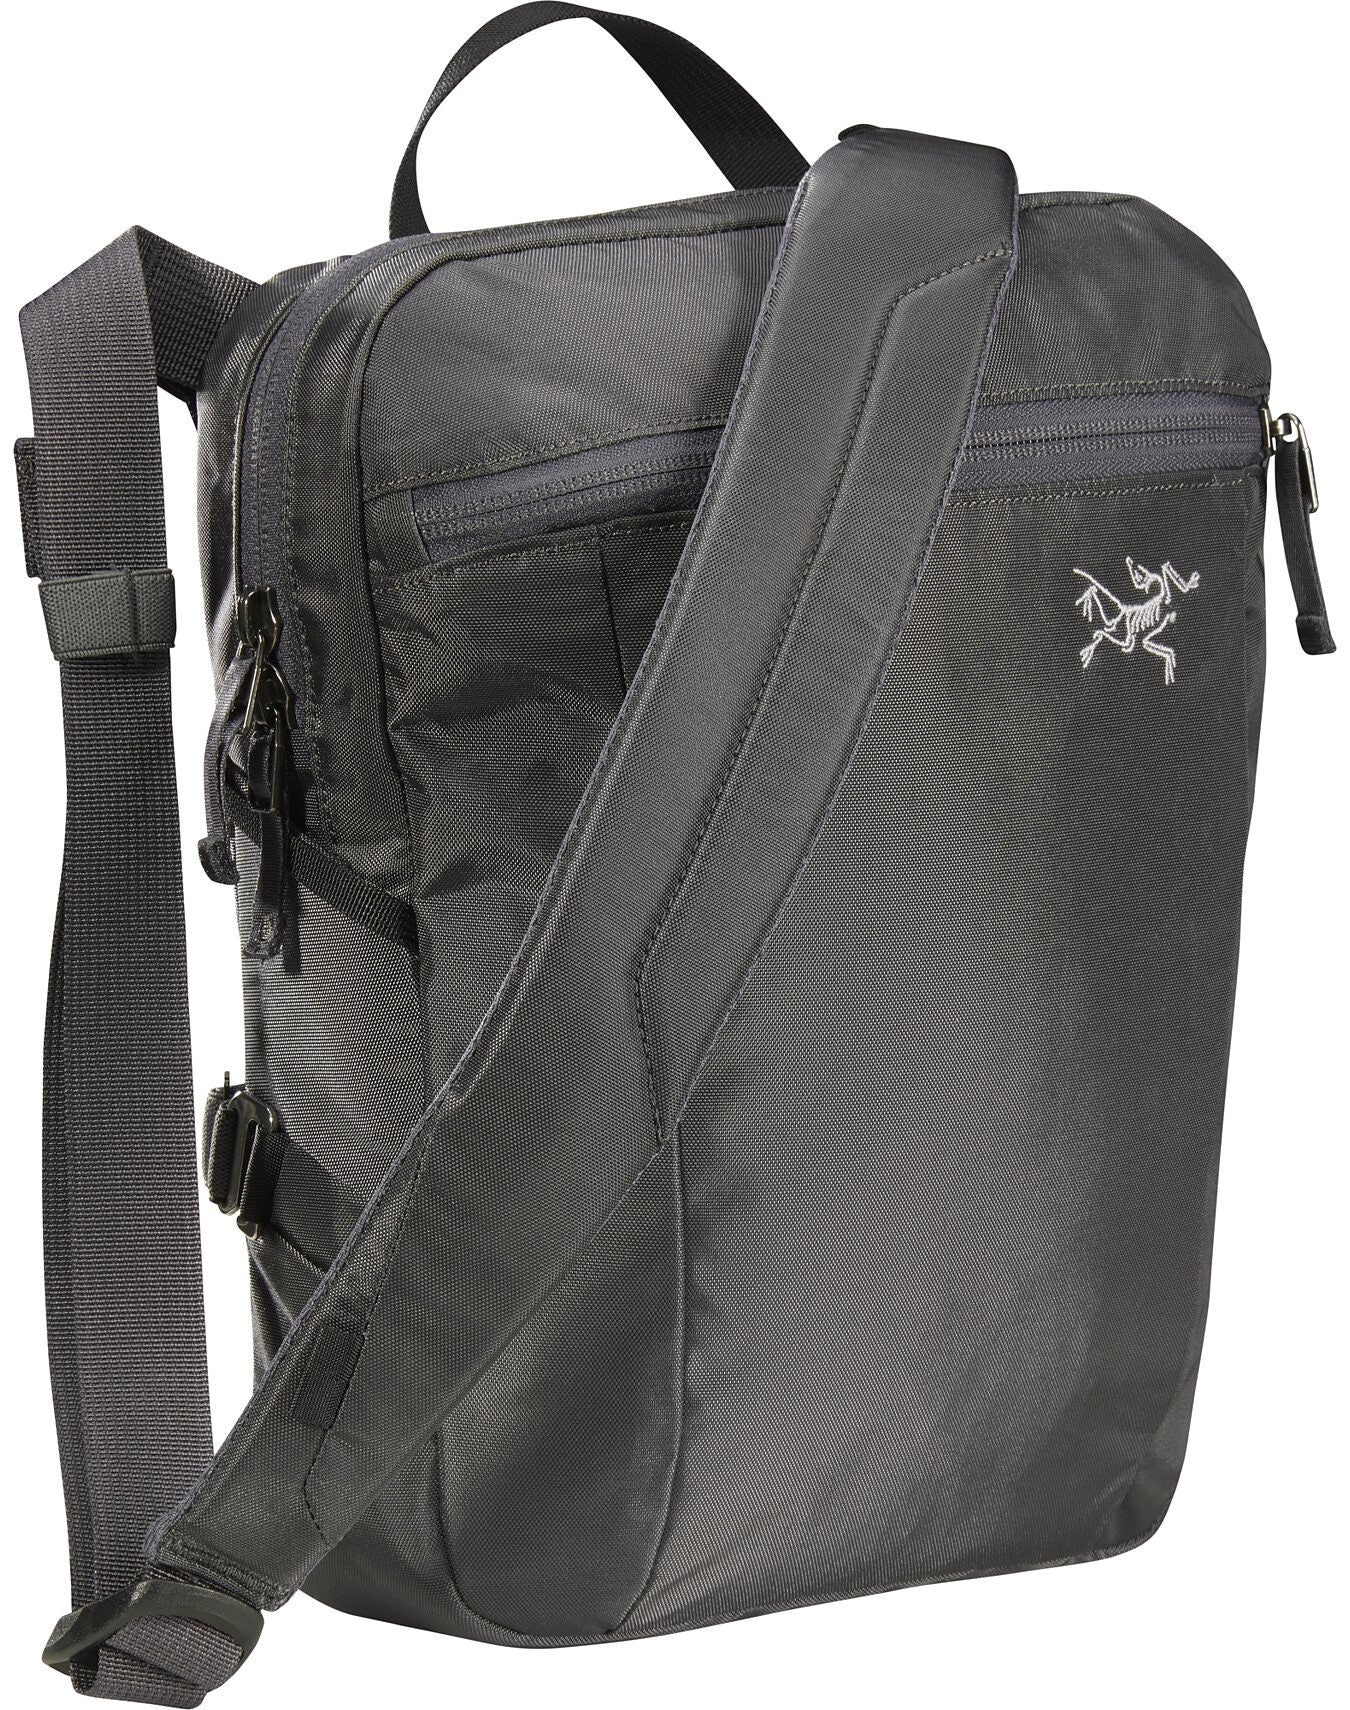 Arcteryx Mantis Sling Pack - Pilot - Find Your Feet Australia Hobart Launceston Tasmania